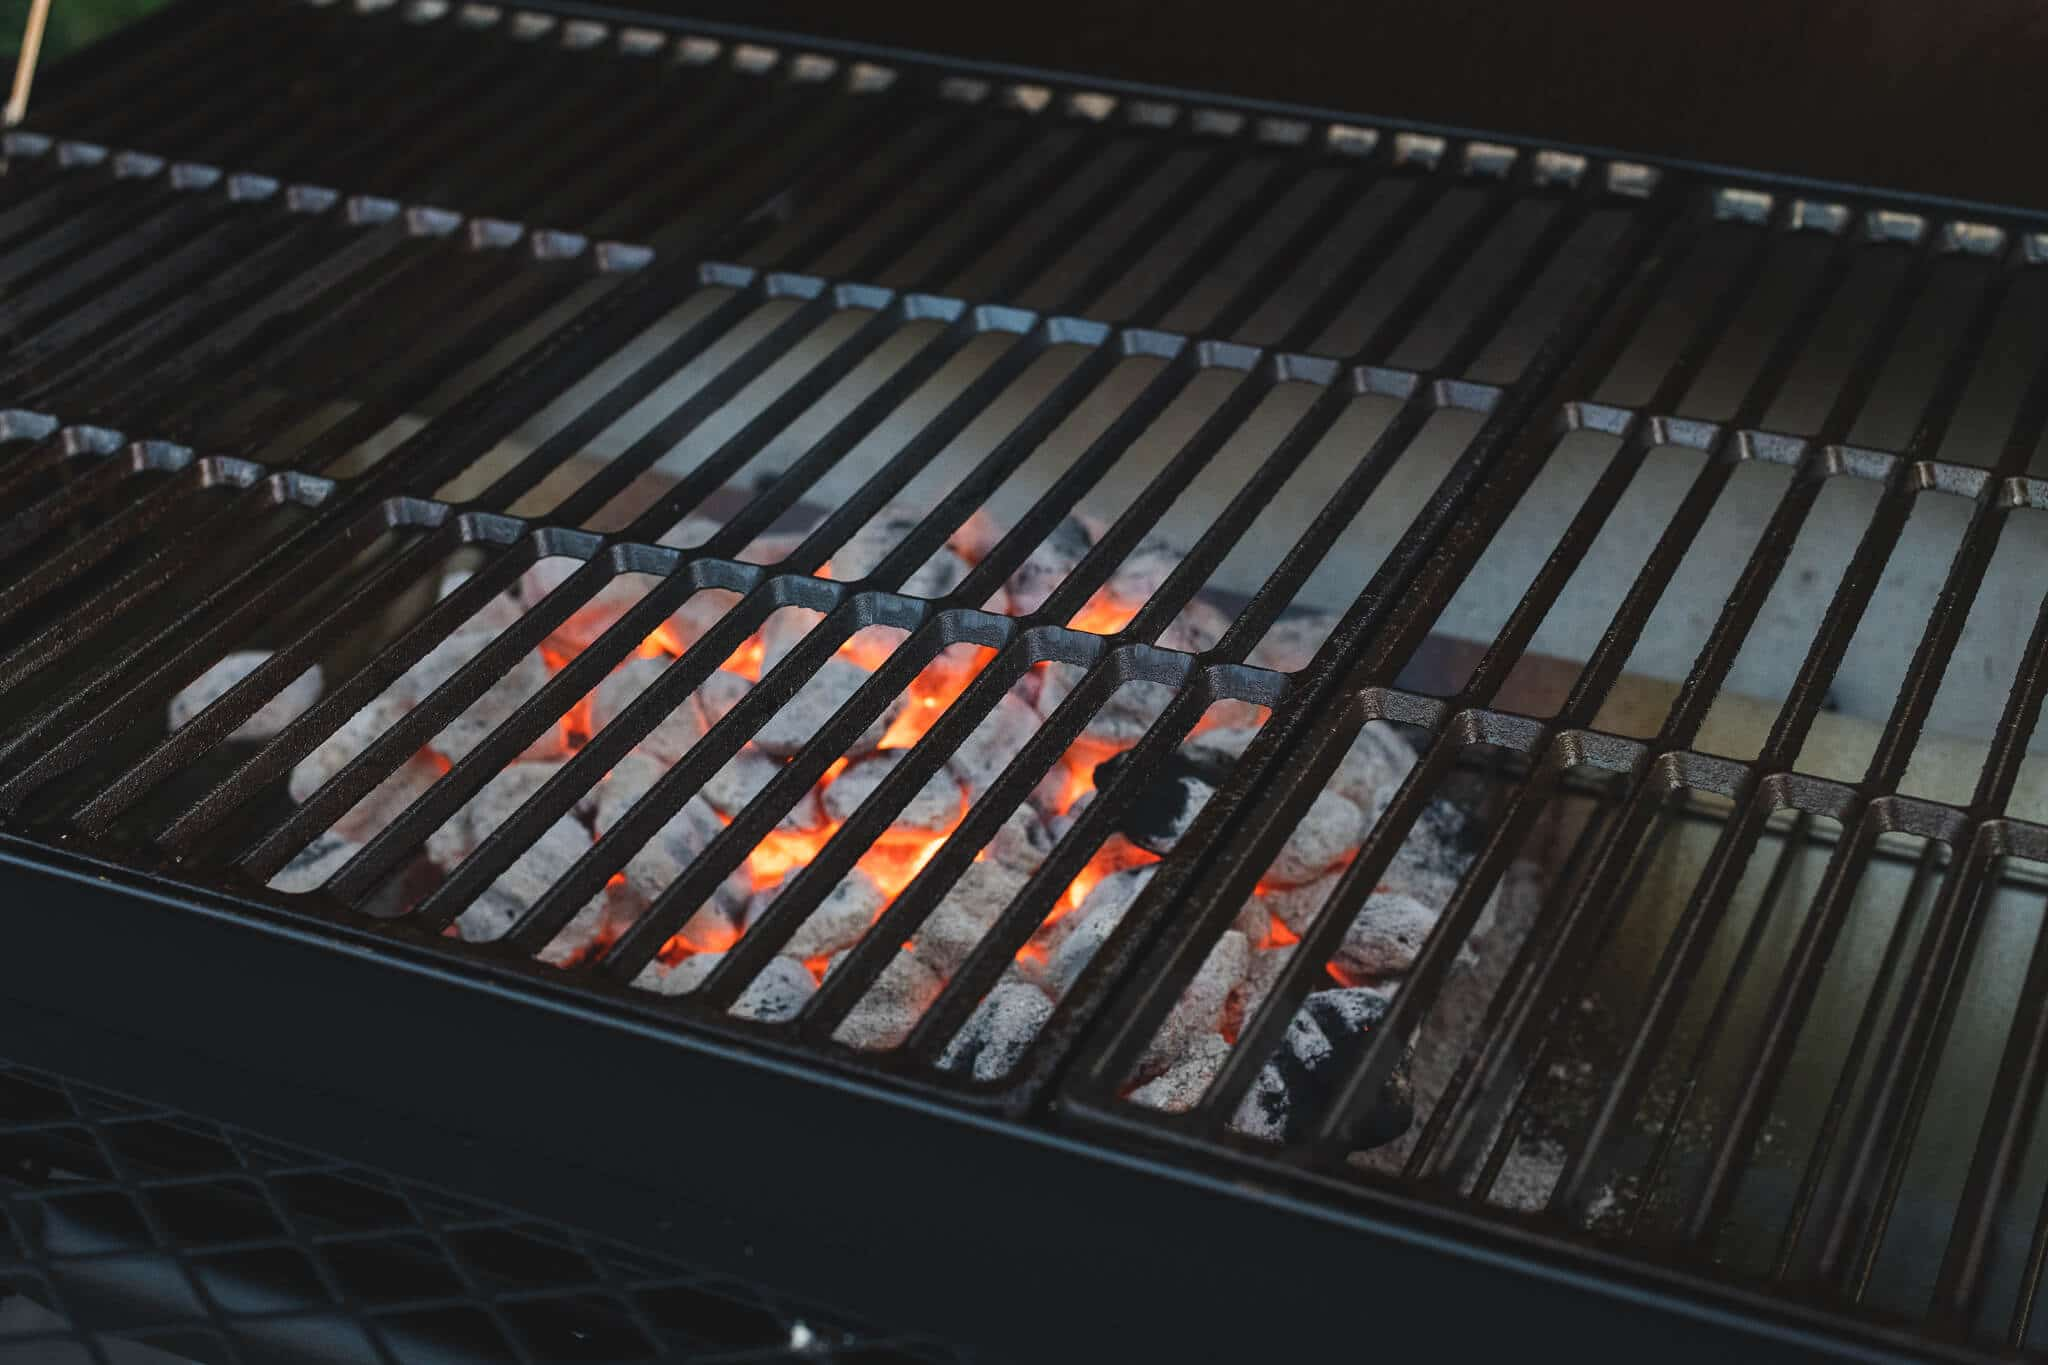 kingsford charcoal grill is ready to bbq